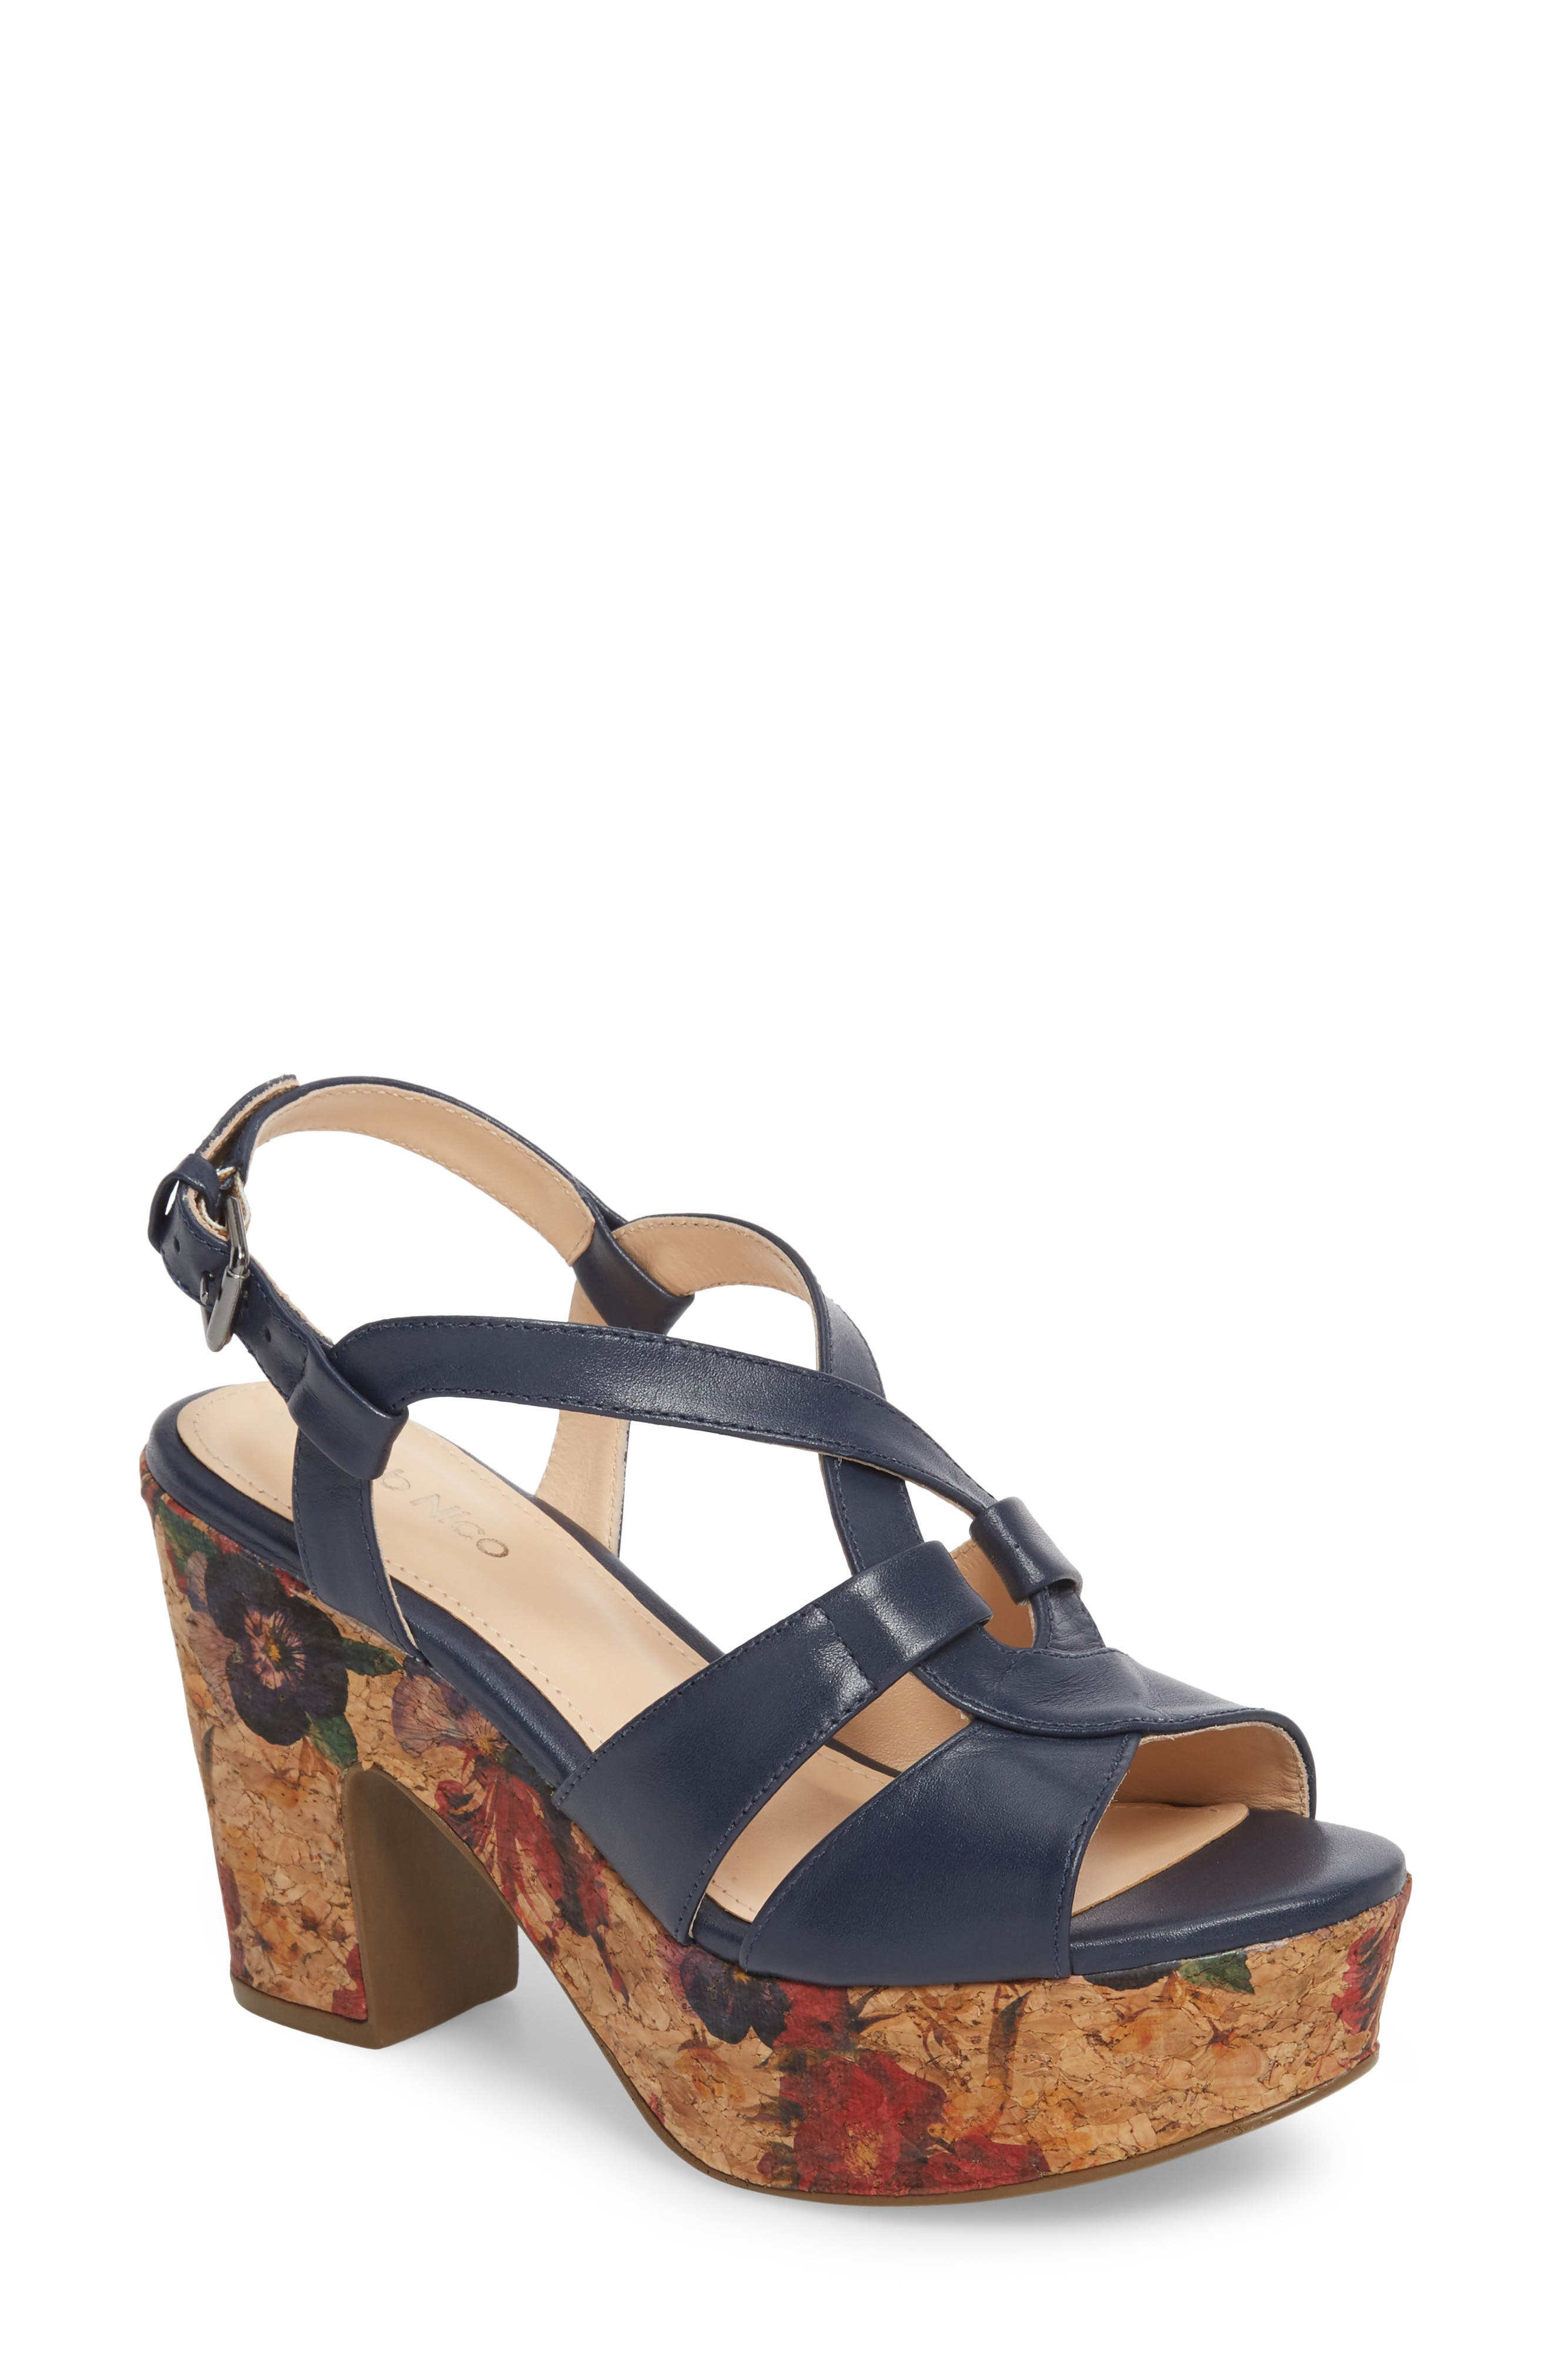 KLUB NICO,                             Victoria Platform Sandal,                             Main thumbnail 1, color,                             NAVY LEATHER